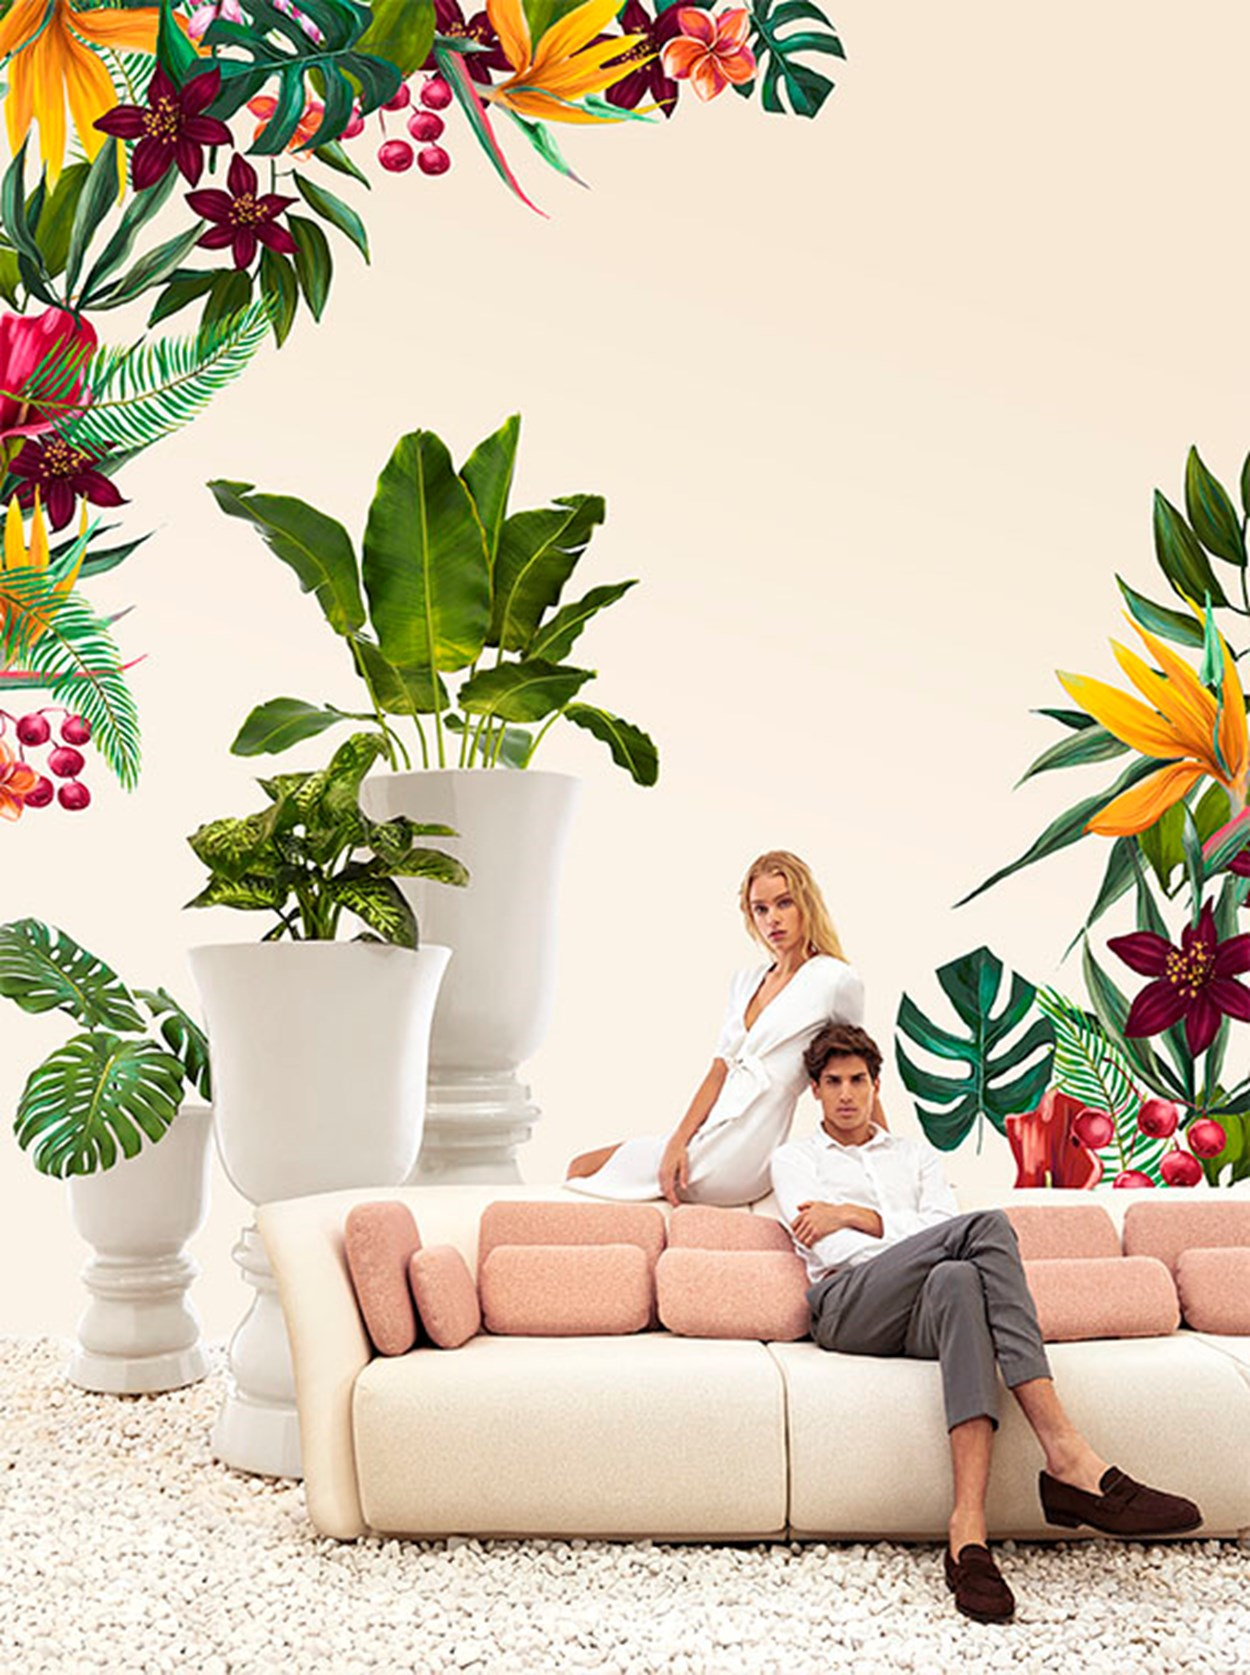 VONDOM_Suave-sofa-and-flower-pot (3).jpg